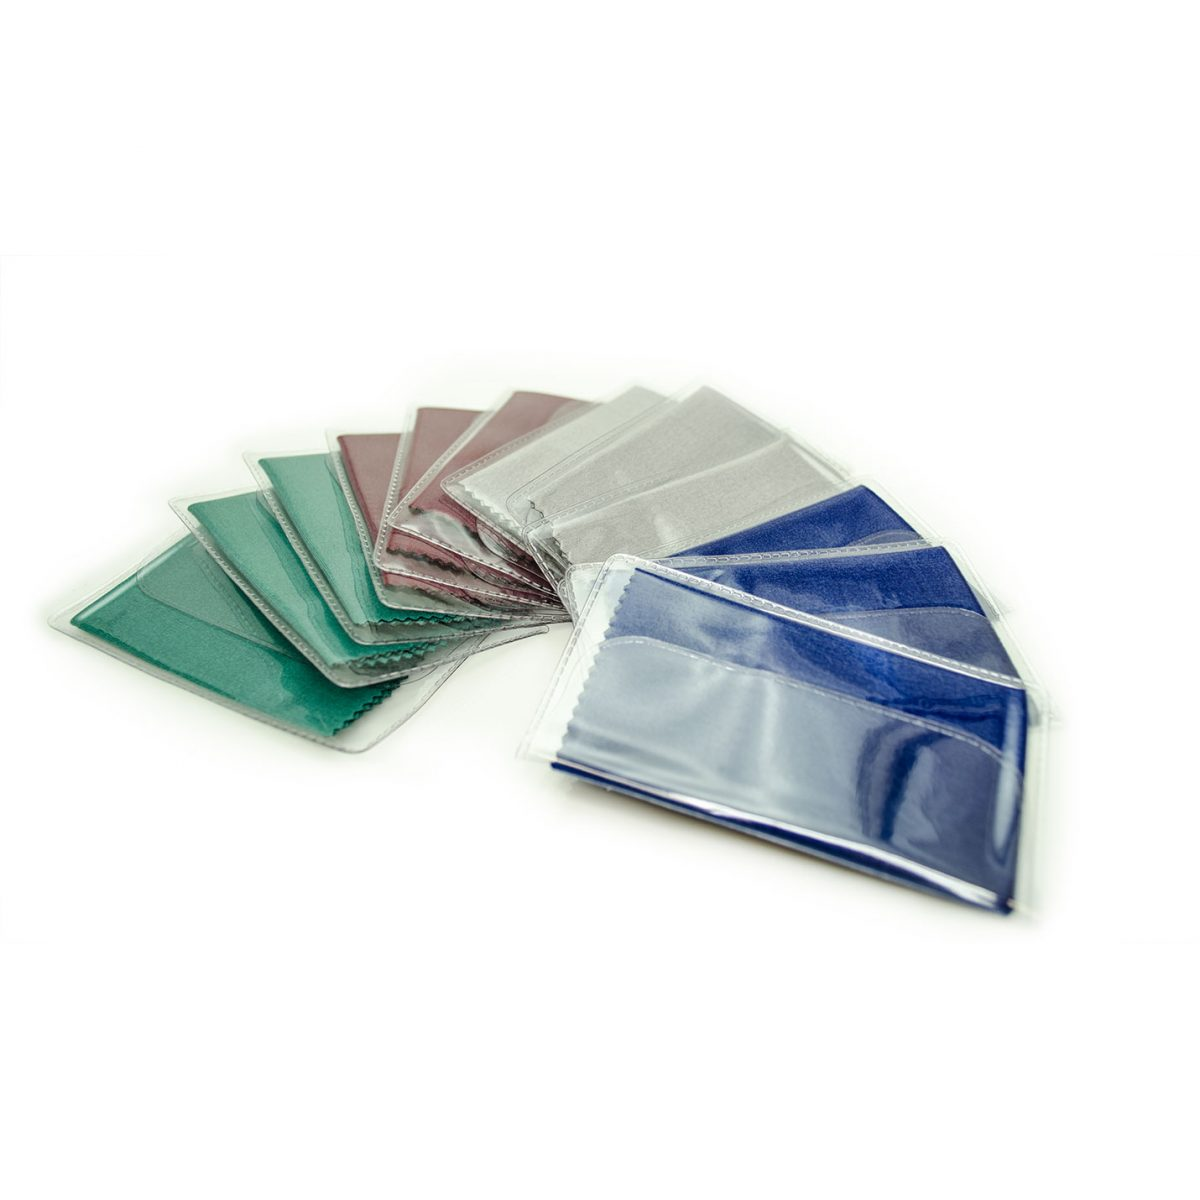 Microfibre Cloths with pouch